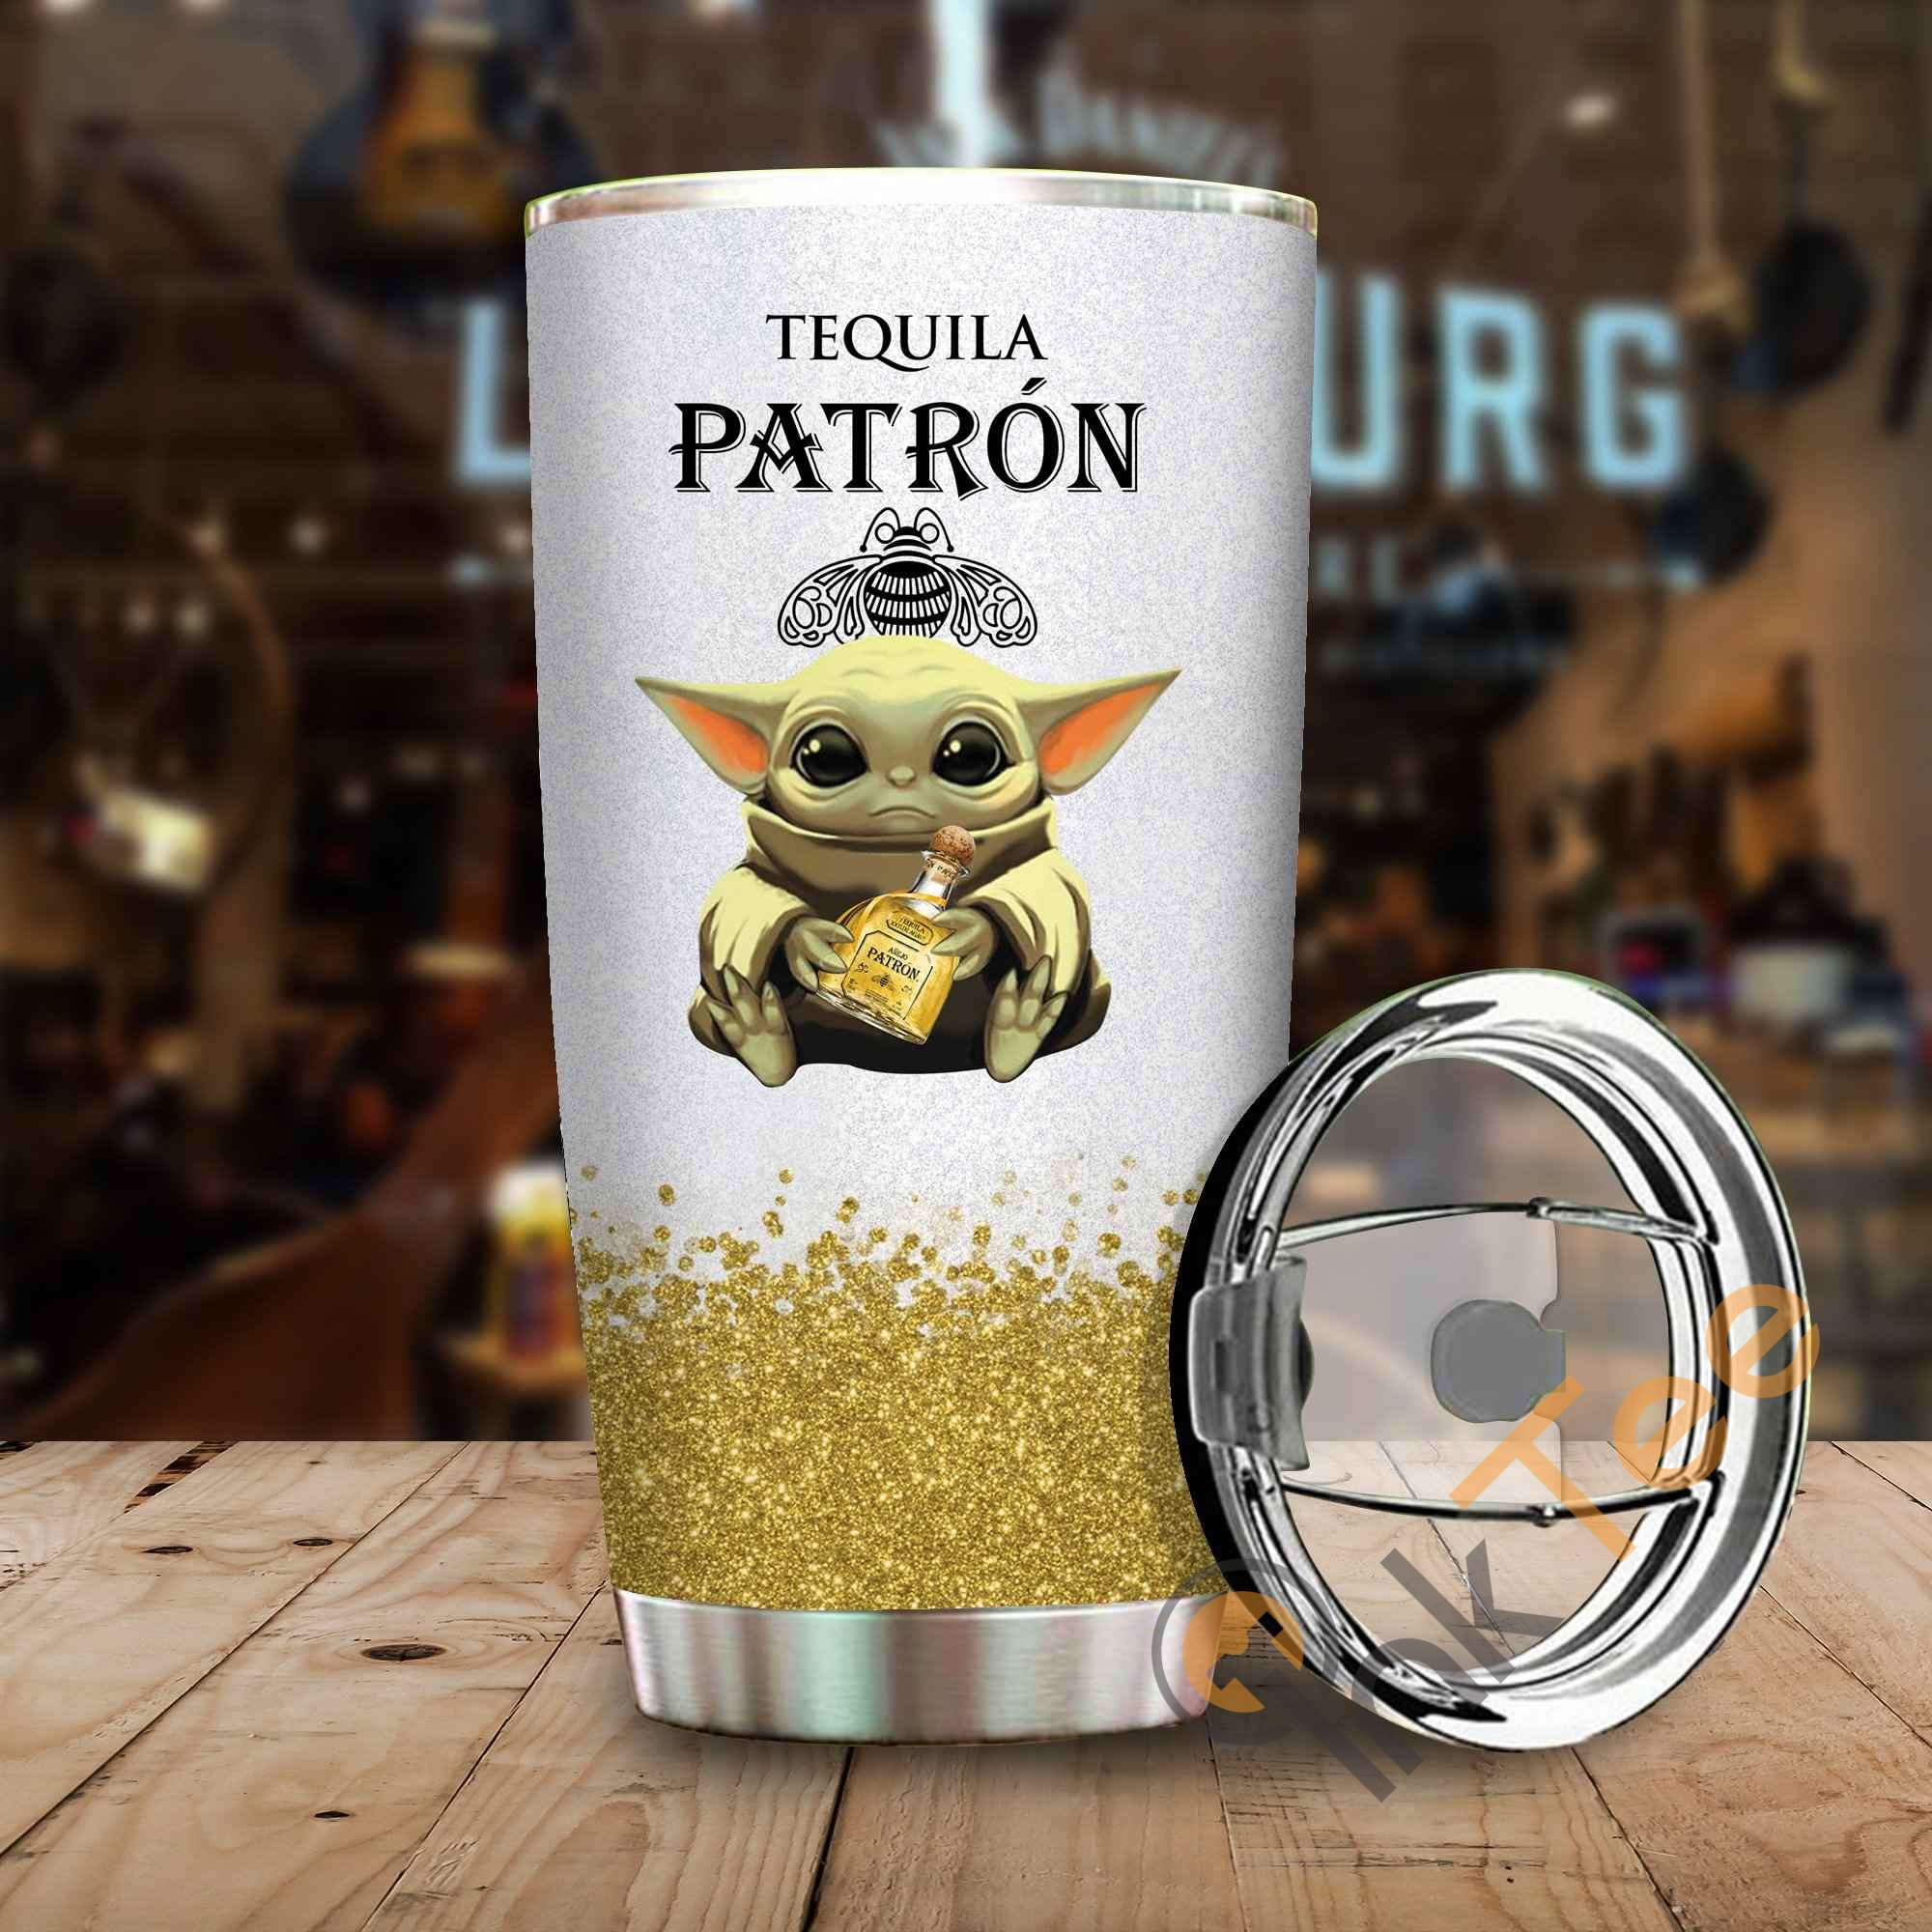 Baby Yoda Hold Tequila Patron Wine Bottle Amazon Best Seller Sku 3998 Stainless Steel Tumbler